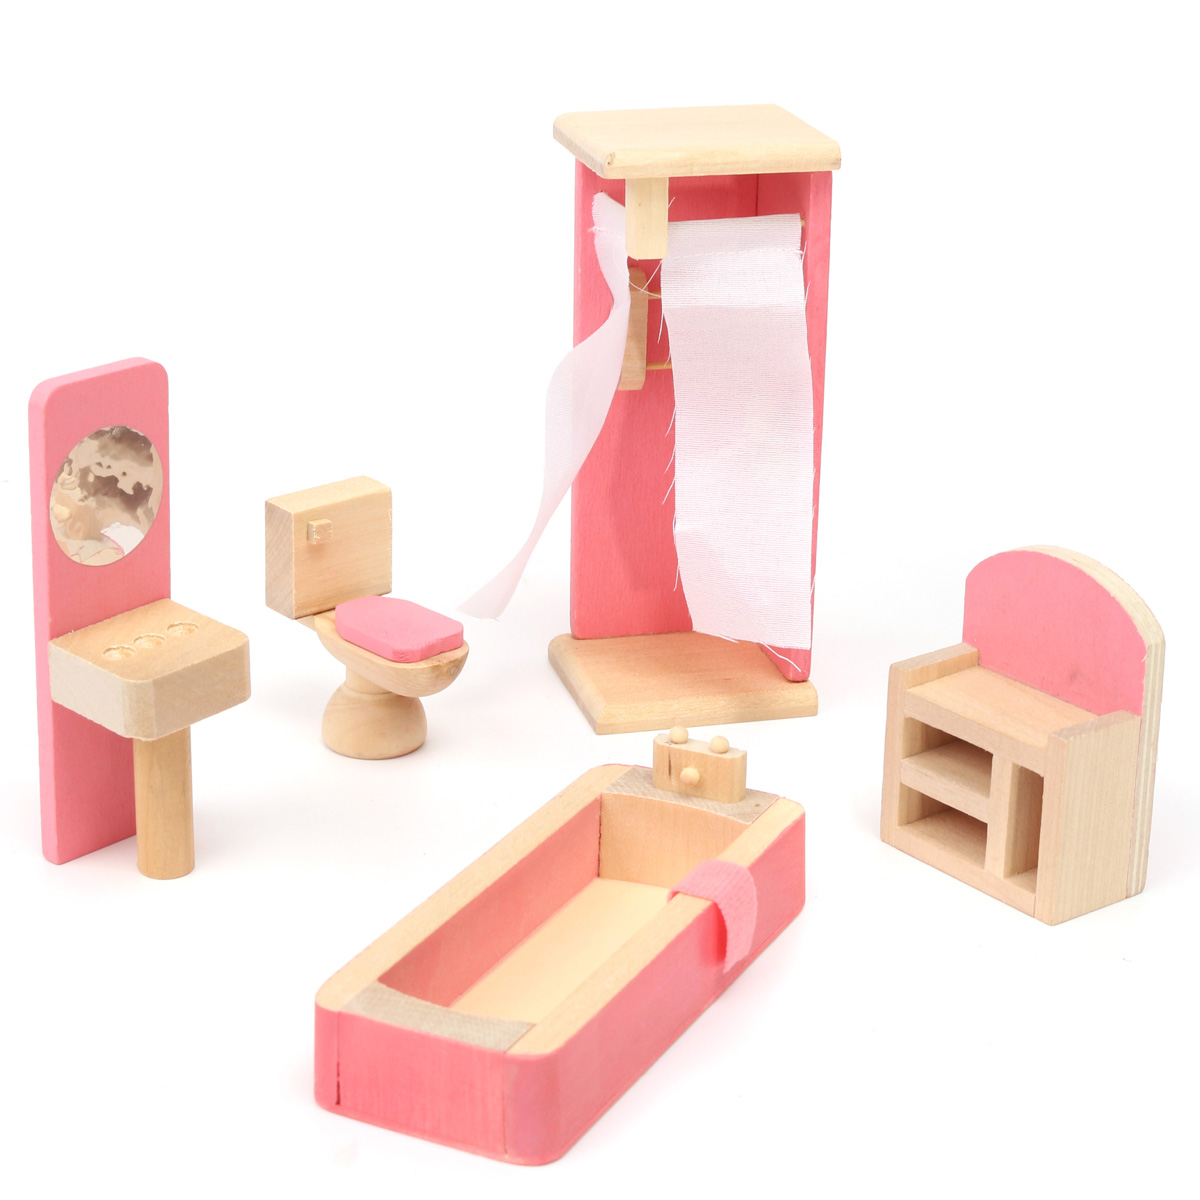 Perfect Wooden Delicate Dollhouse Furniture Toys Miniature For Kids Children  Pretend Play 6 Room Set/4 Dolls Toys In Furniture Toys From Toys U0026 Hobbies  On ...